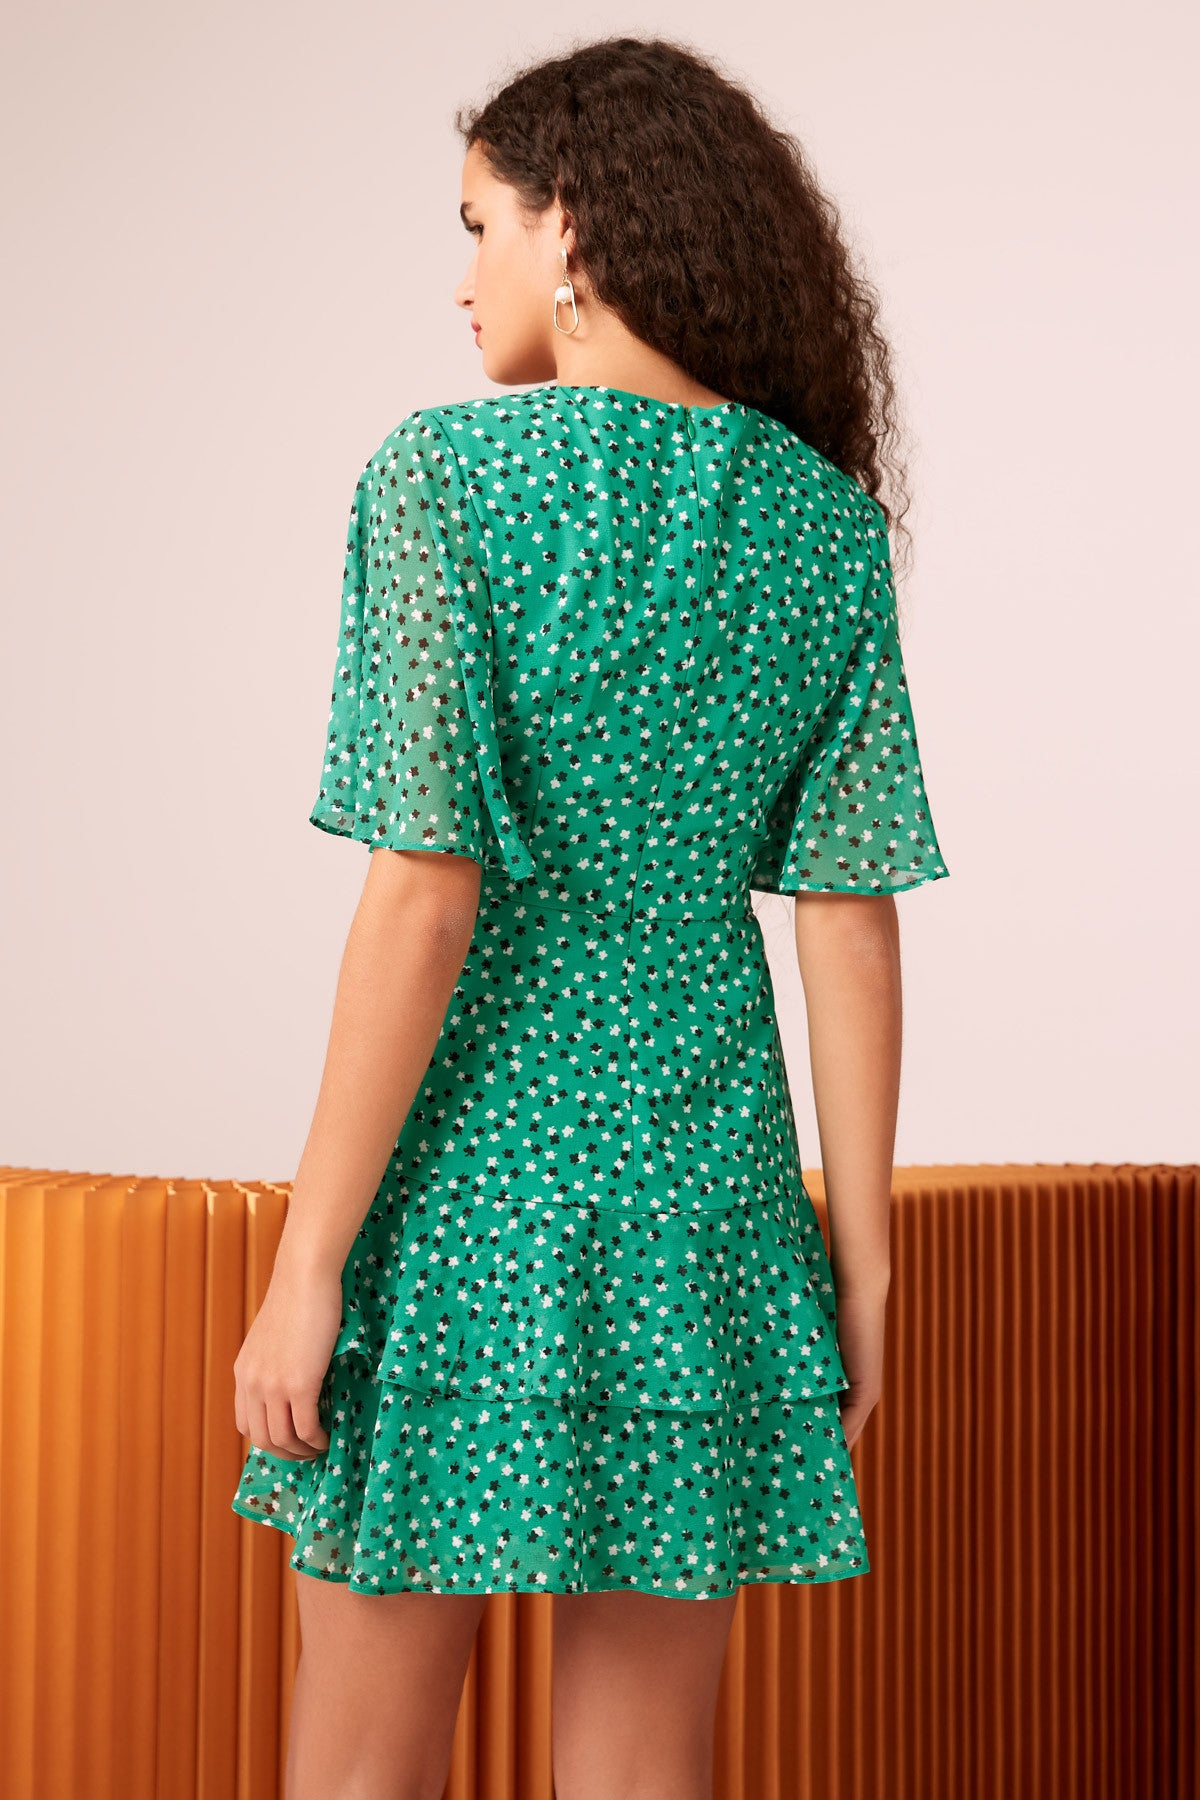 LOYALTIES MINI DRESS green ditsy floral